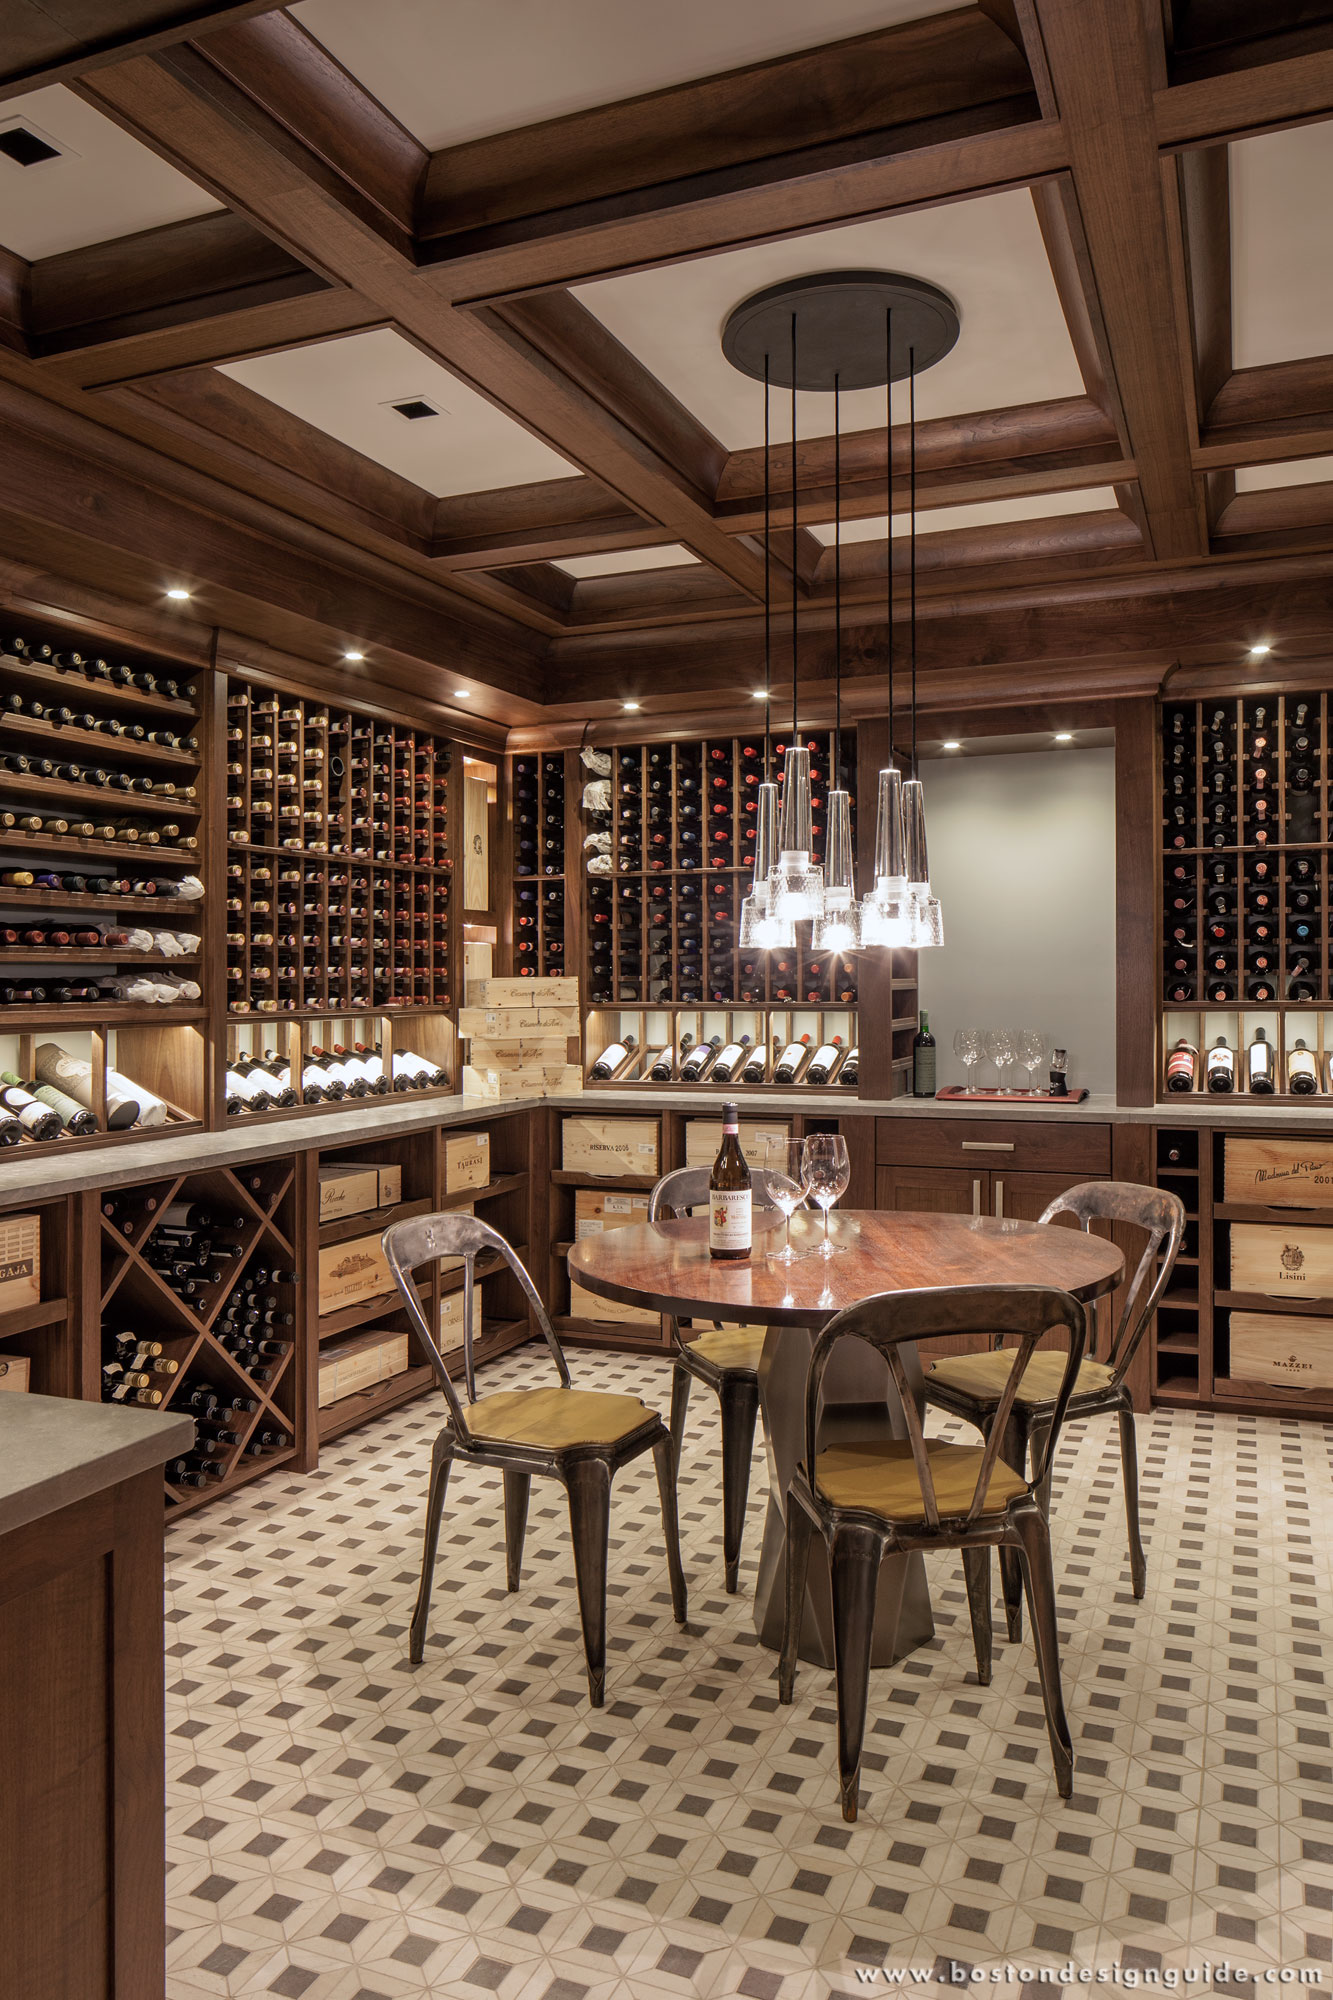 Charles river wine cellars for Wine cellar layout